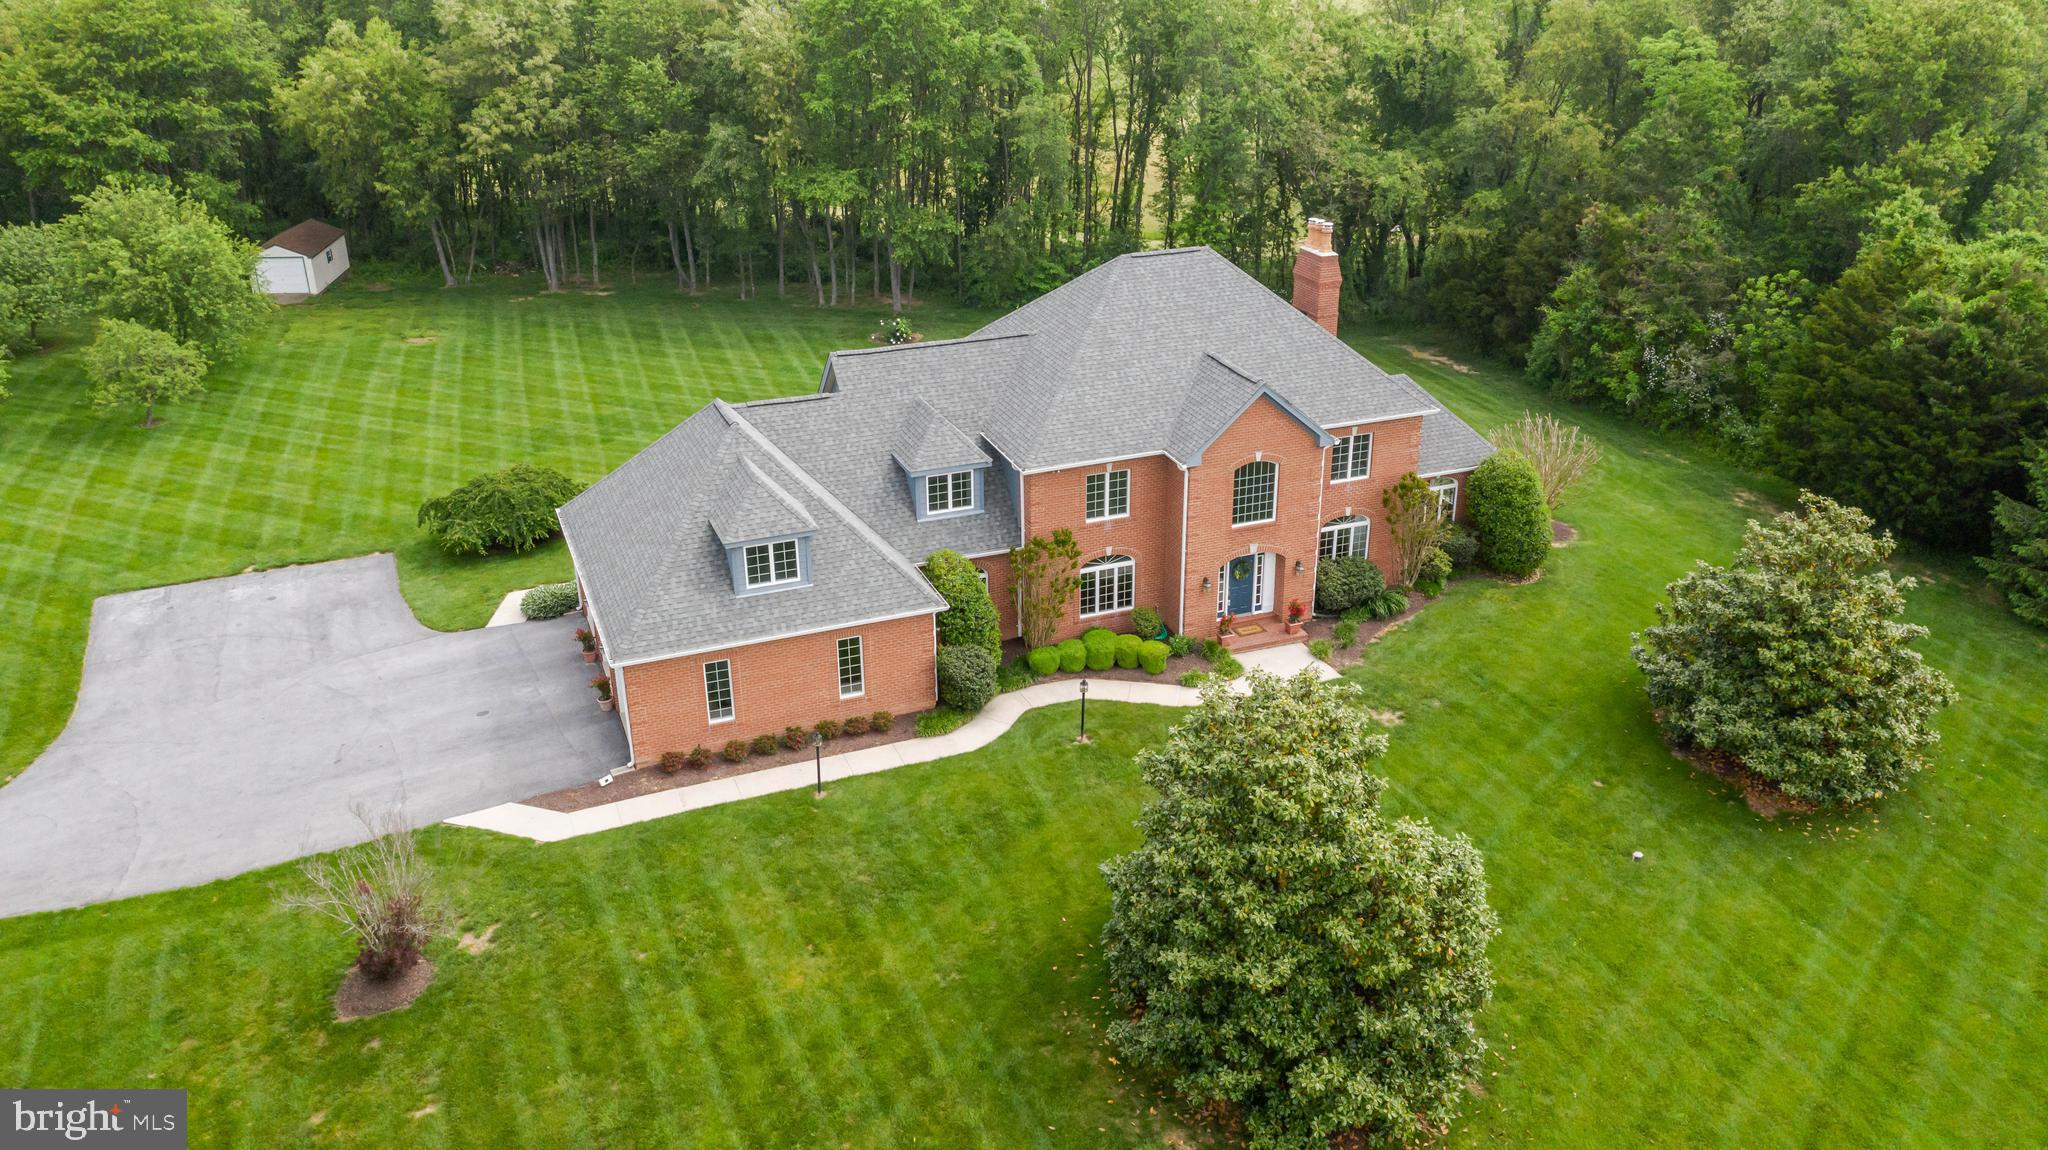 1470 Coventry Meadows Drive, Sykesville, MD 21784